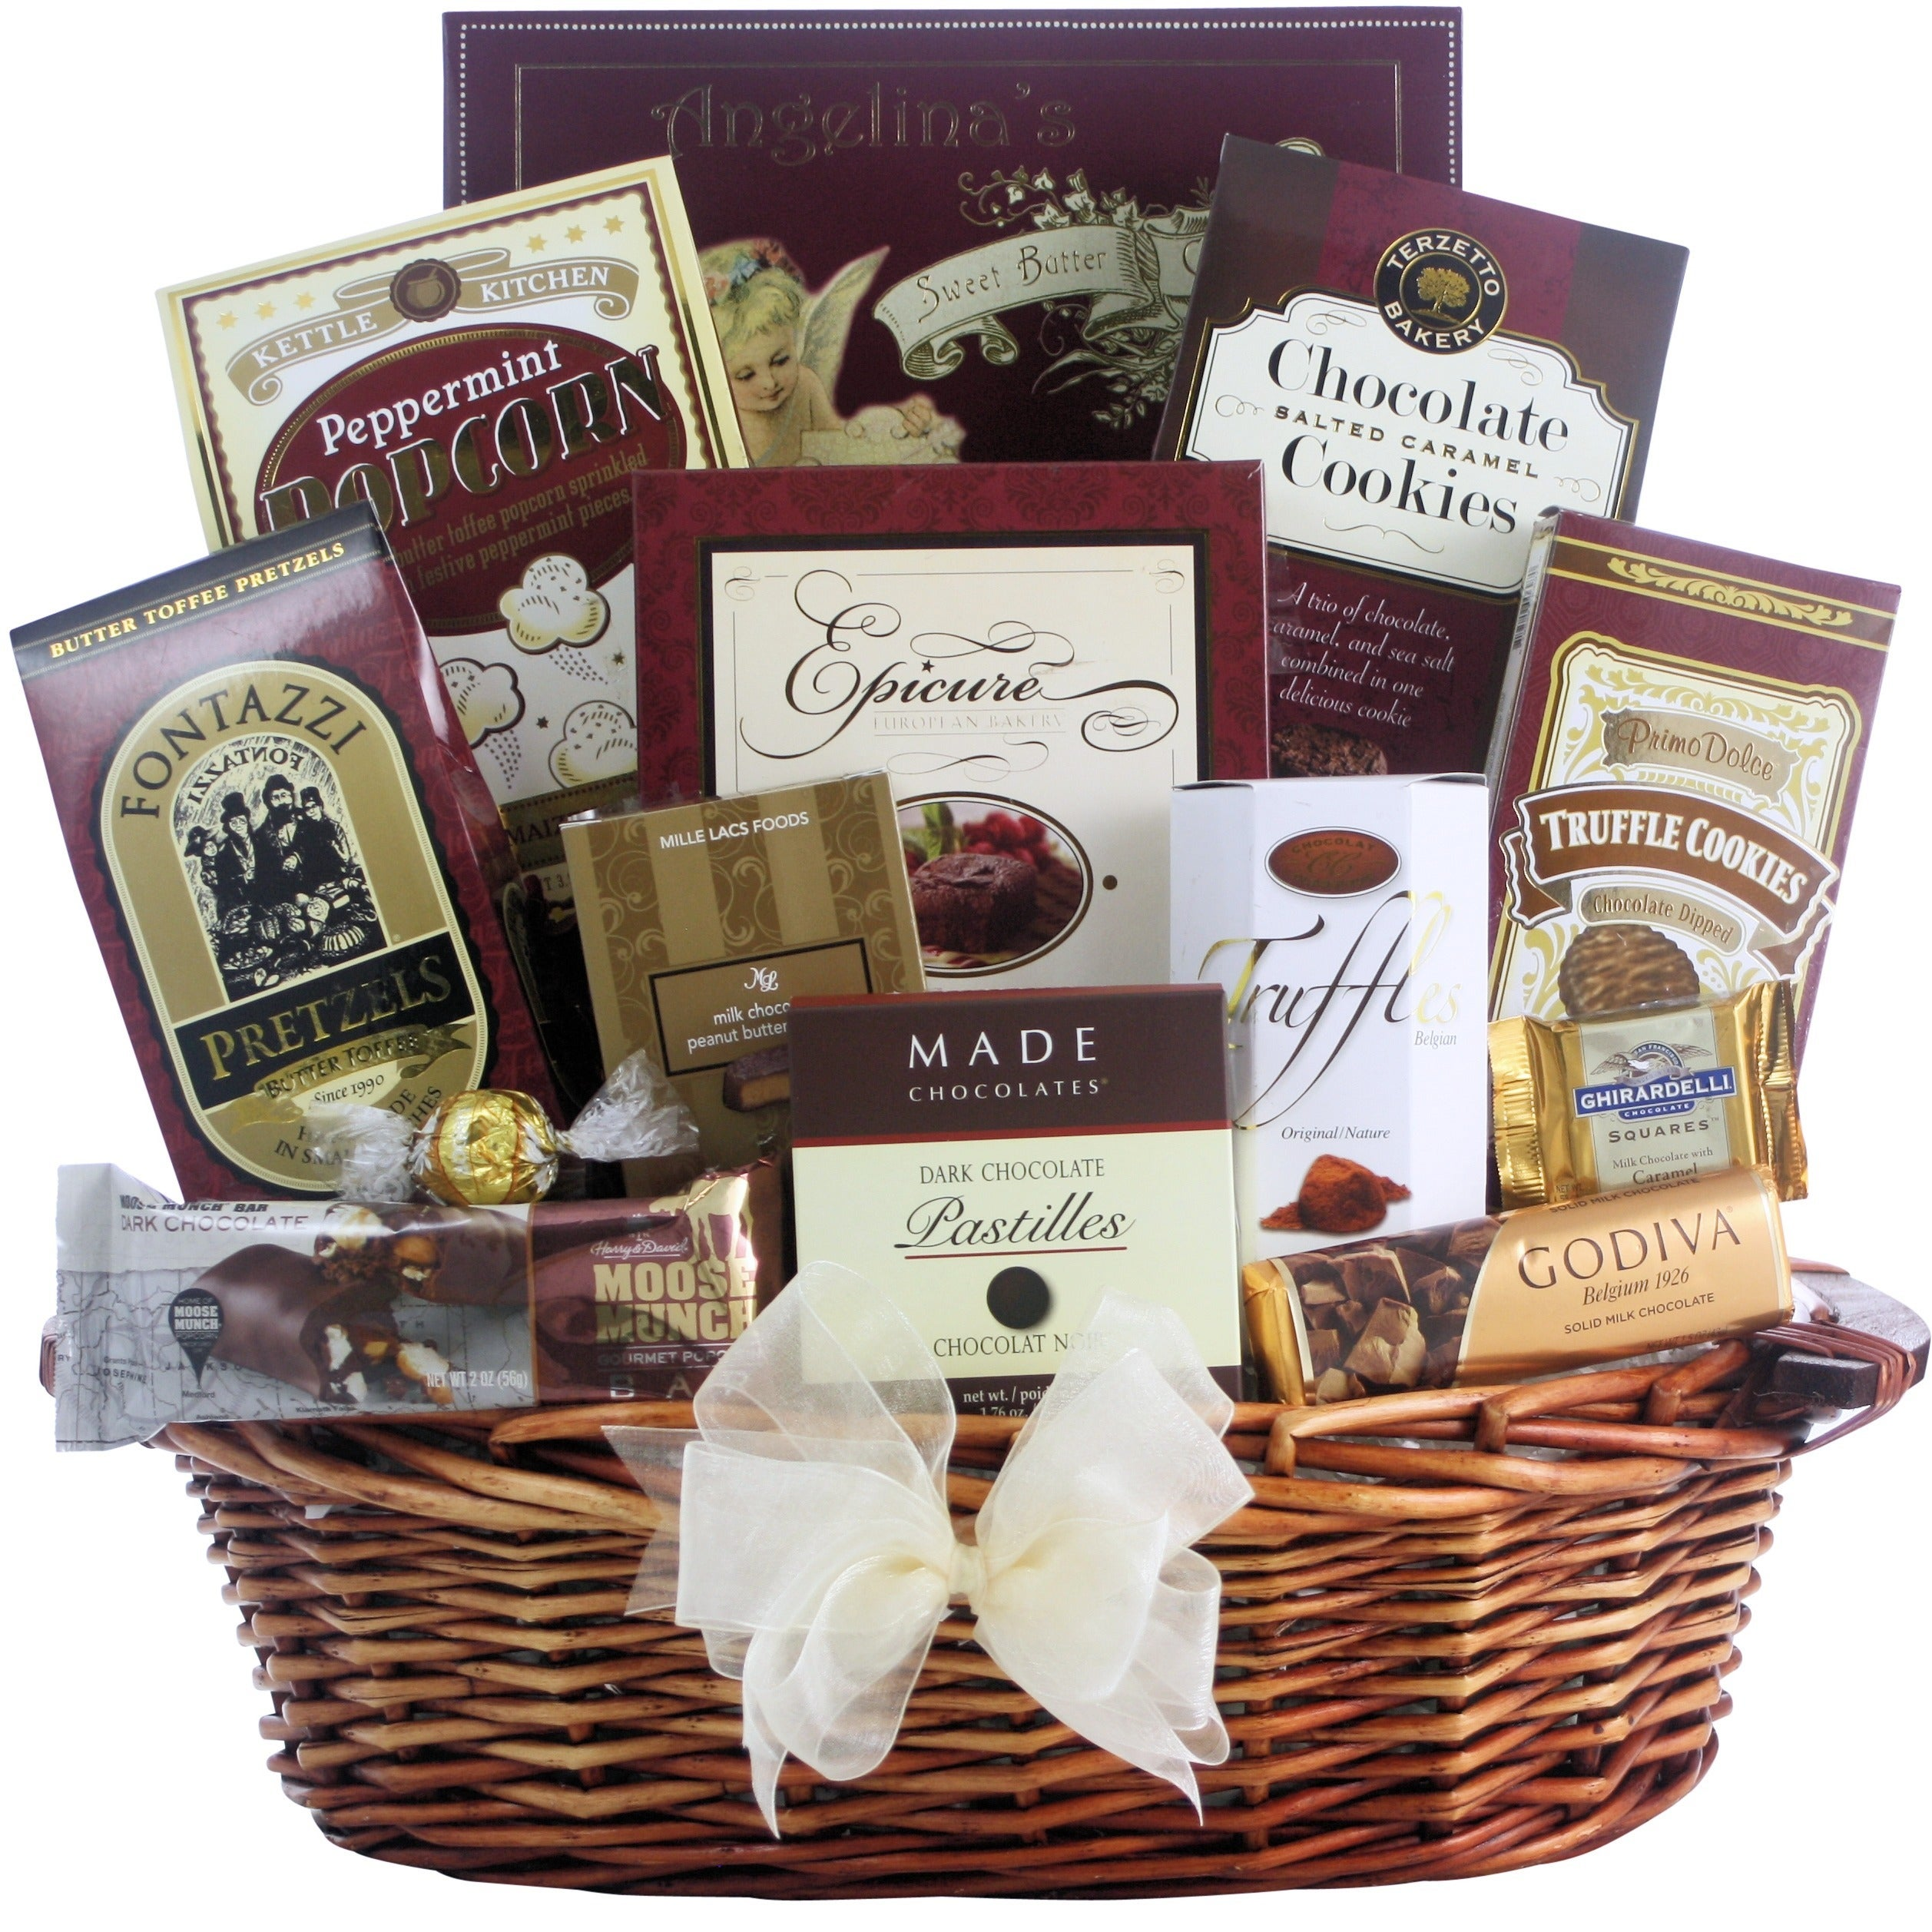 Buy chocolate gift baskets - Chocolate Cravings: Chocolate Gift Basket